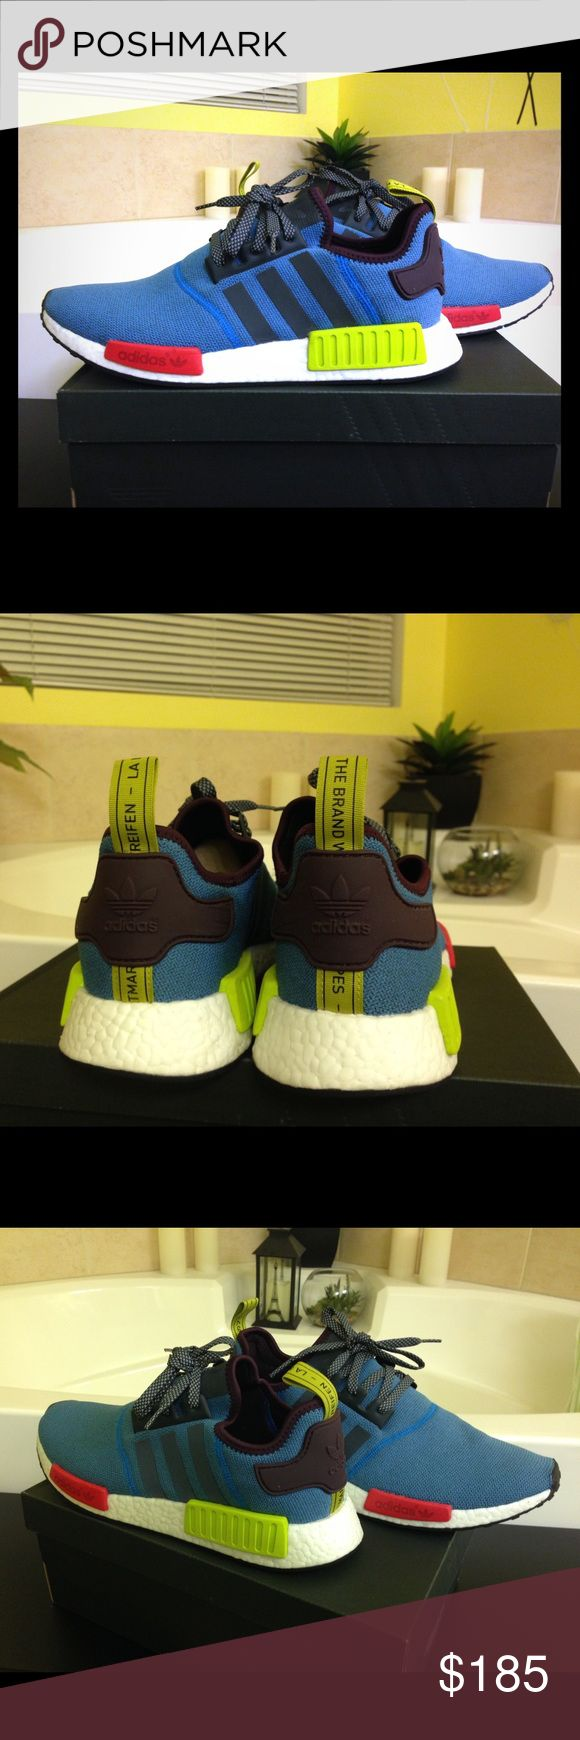 ADIDAS NMD R1 viLLA EXCLUSIVE The shoes that everyone wants to have. The nmd is the reigning sneaker for about 2 years now. I have new ones so just trying to sell some. In great condition always. Check my reviews from my customers. Size 11. This style hasn't been produced since they launched it.just for ViLLA store exclusive. Adidas Shoes Sneakers